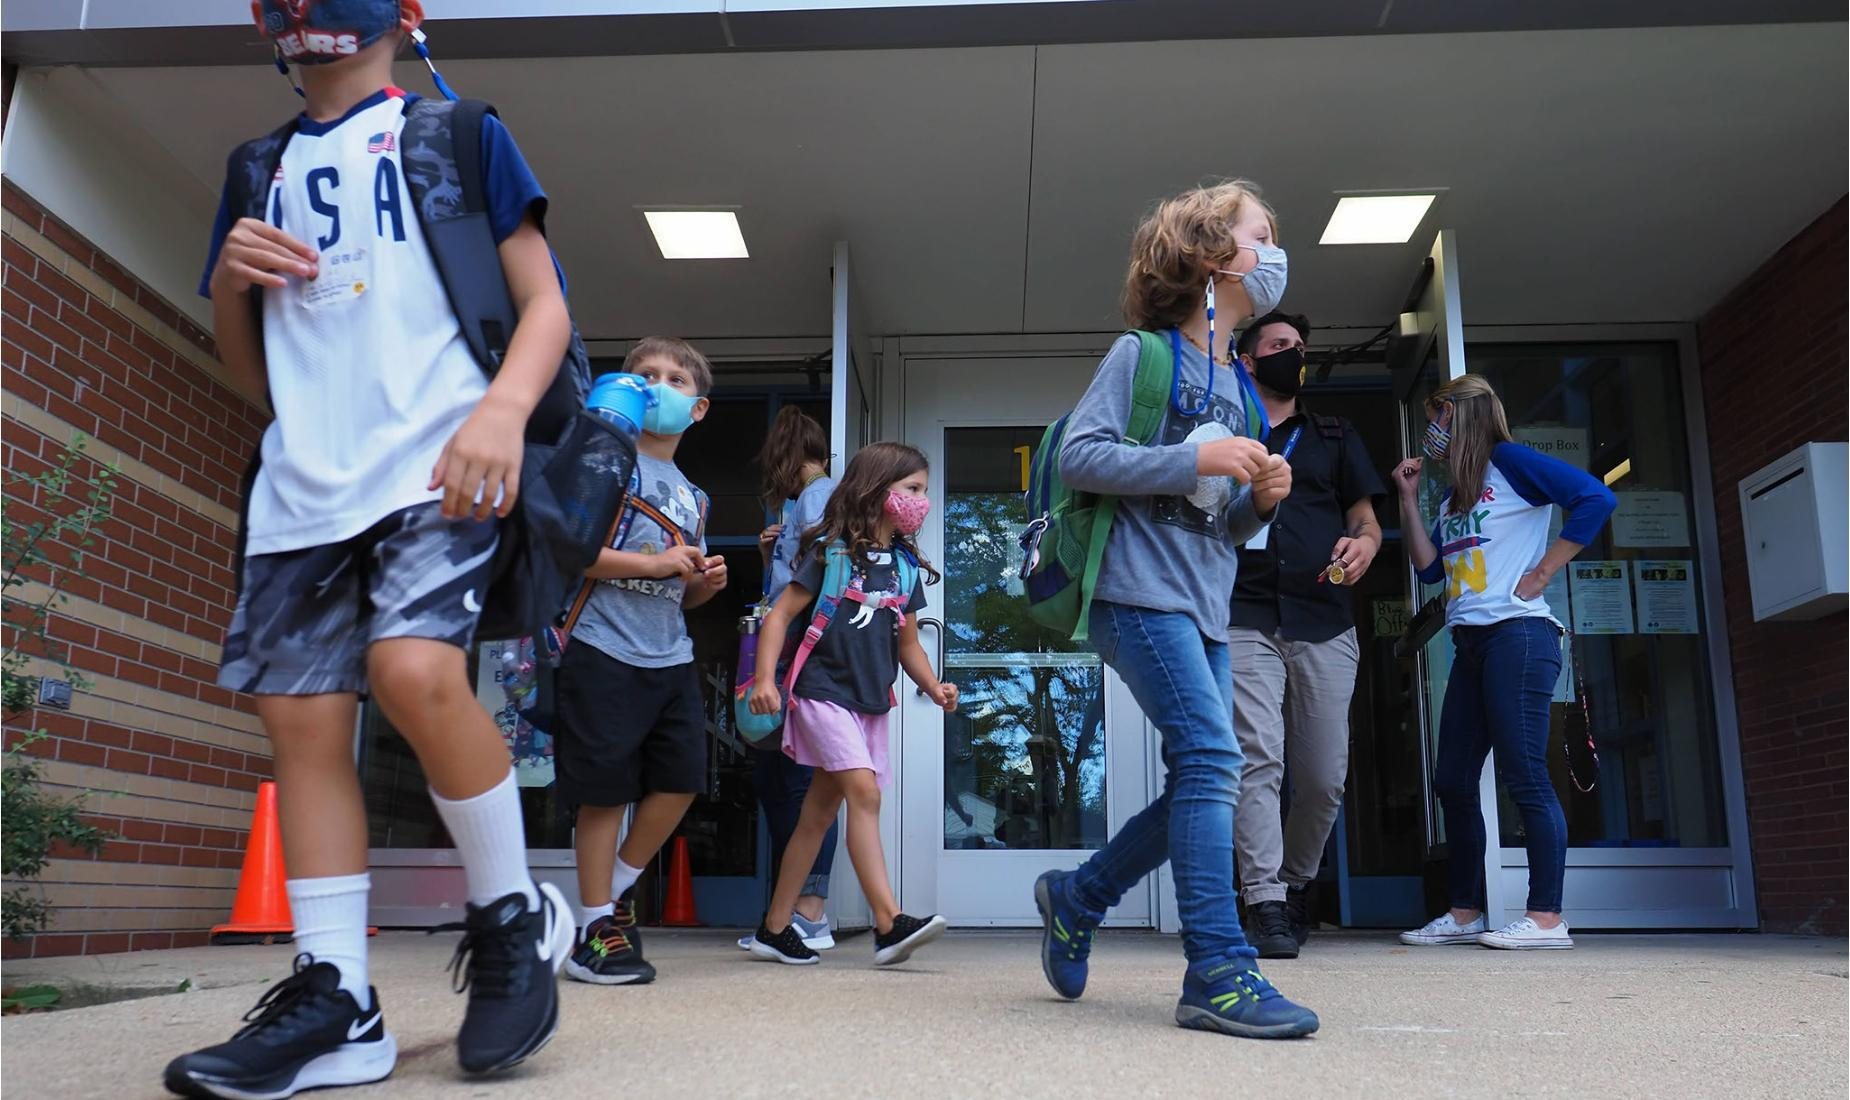 Students leaving at dismissal